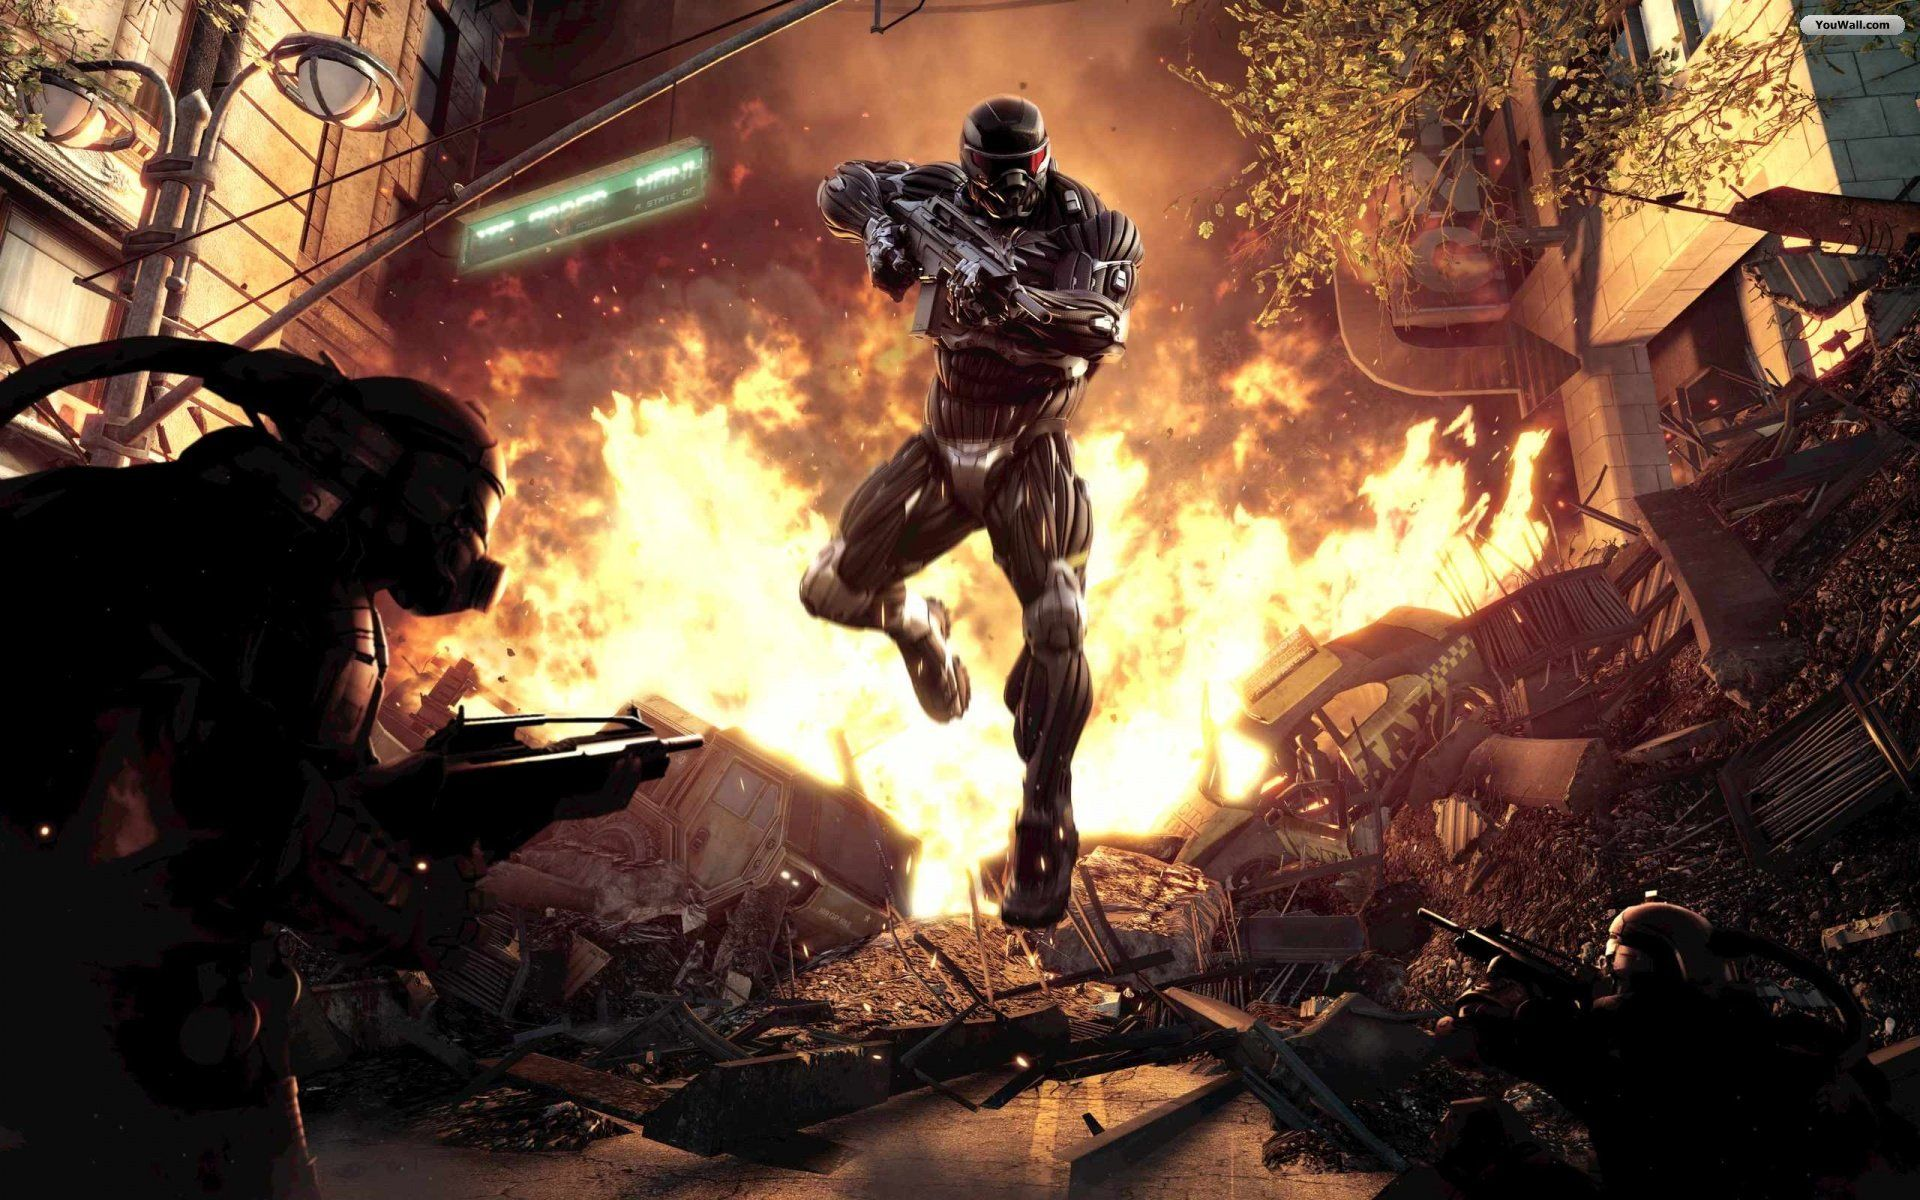 action | YouWall - Crysis Action Wallpaper - wallpaper,wallpapers,free ...